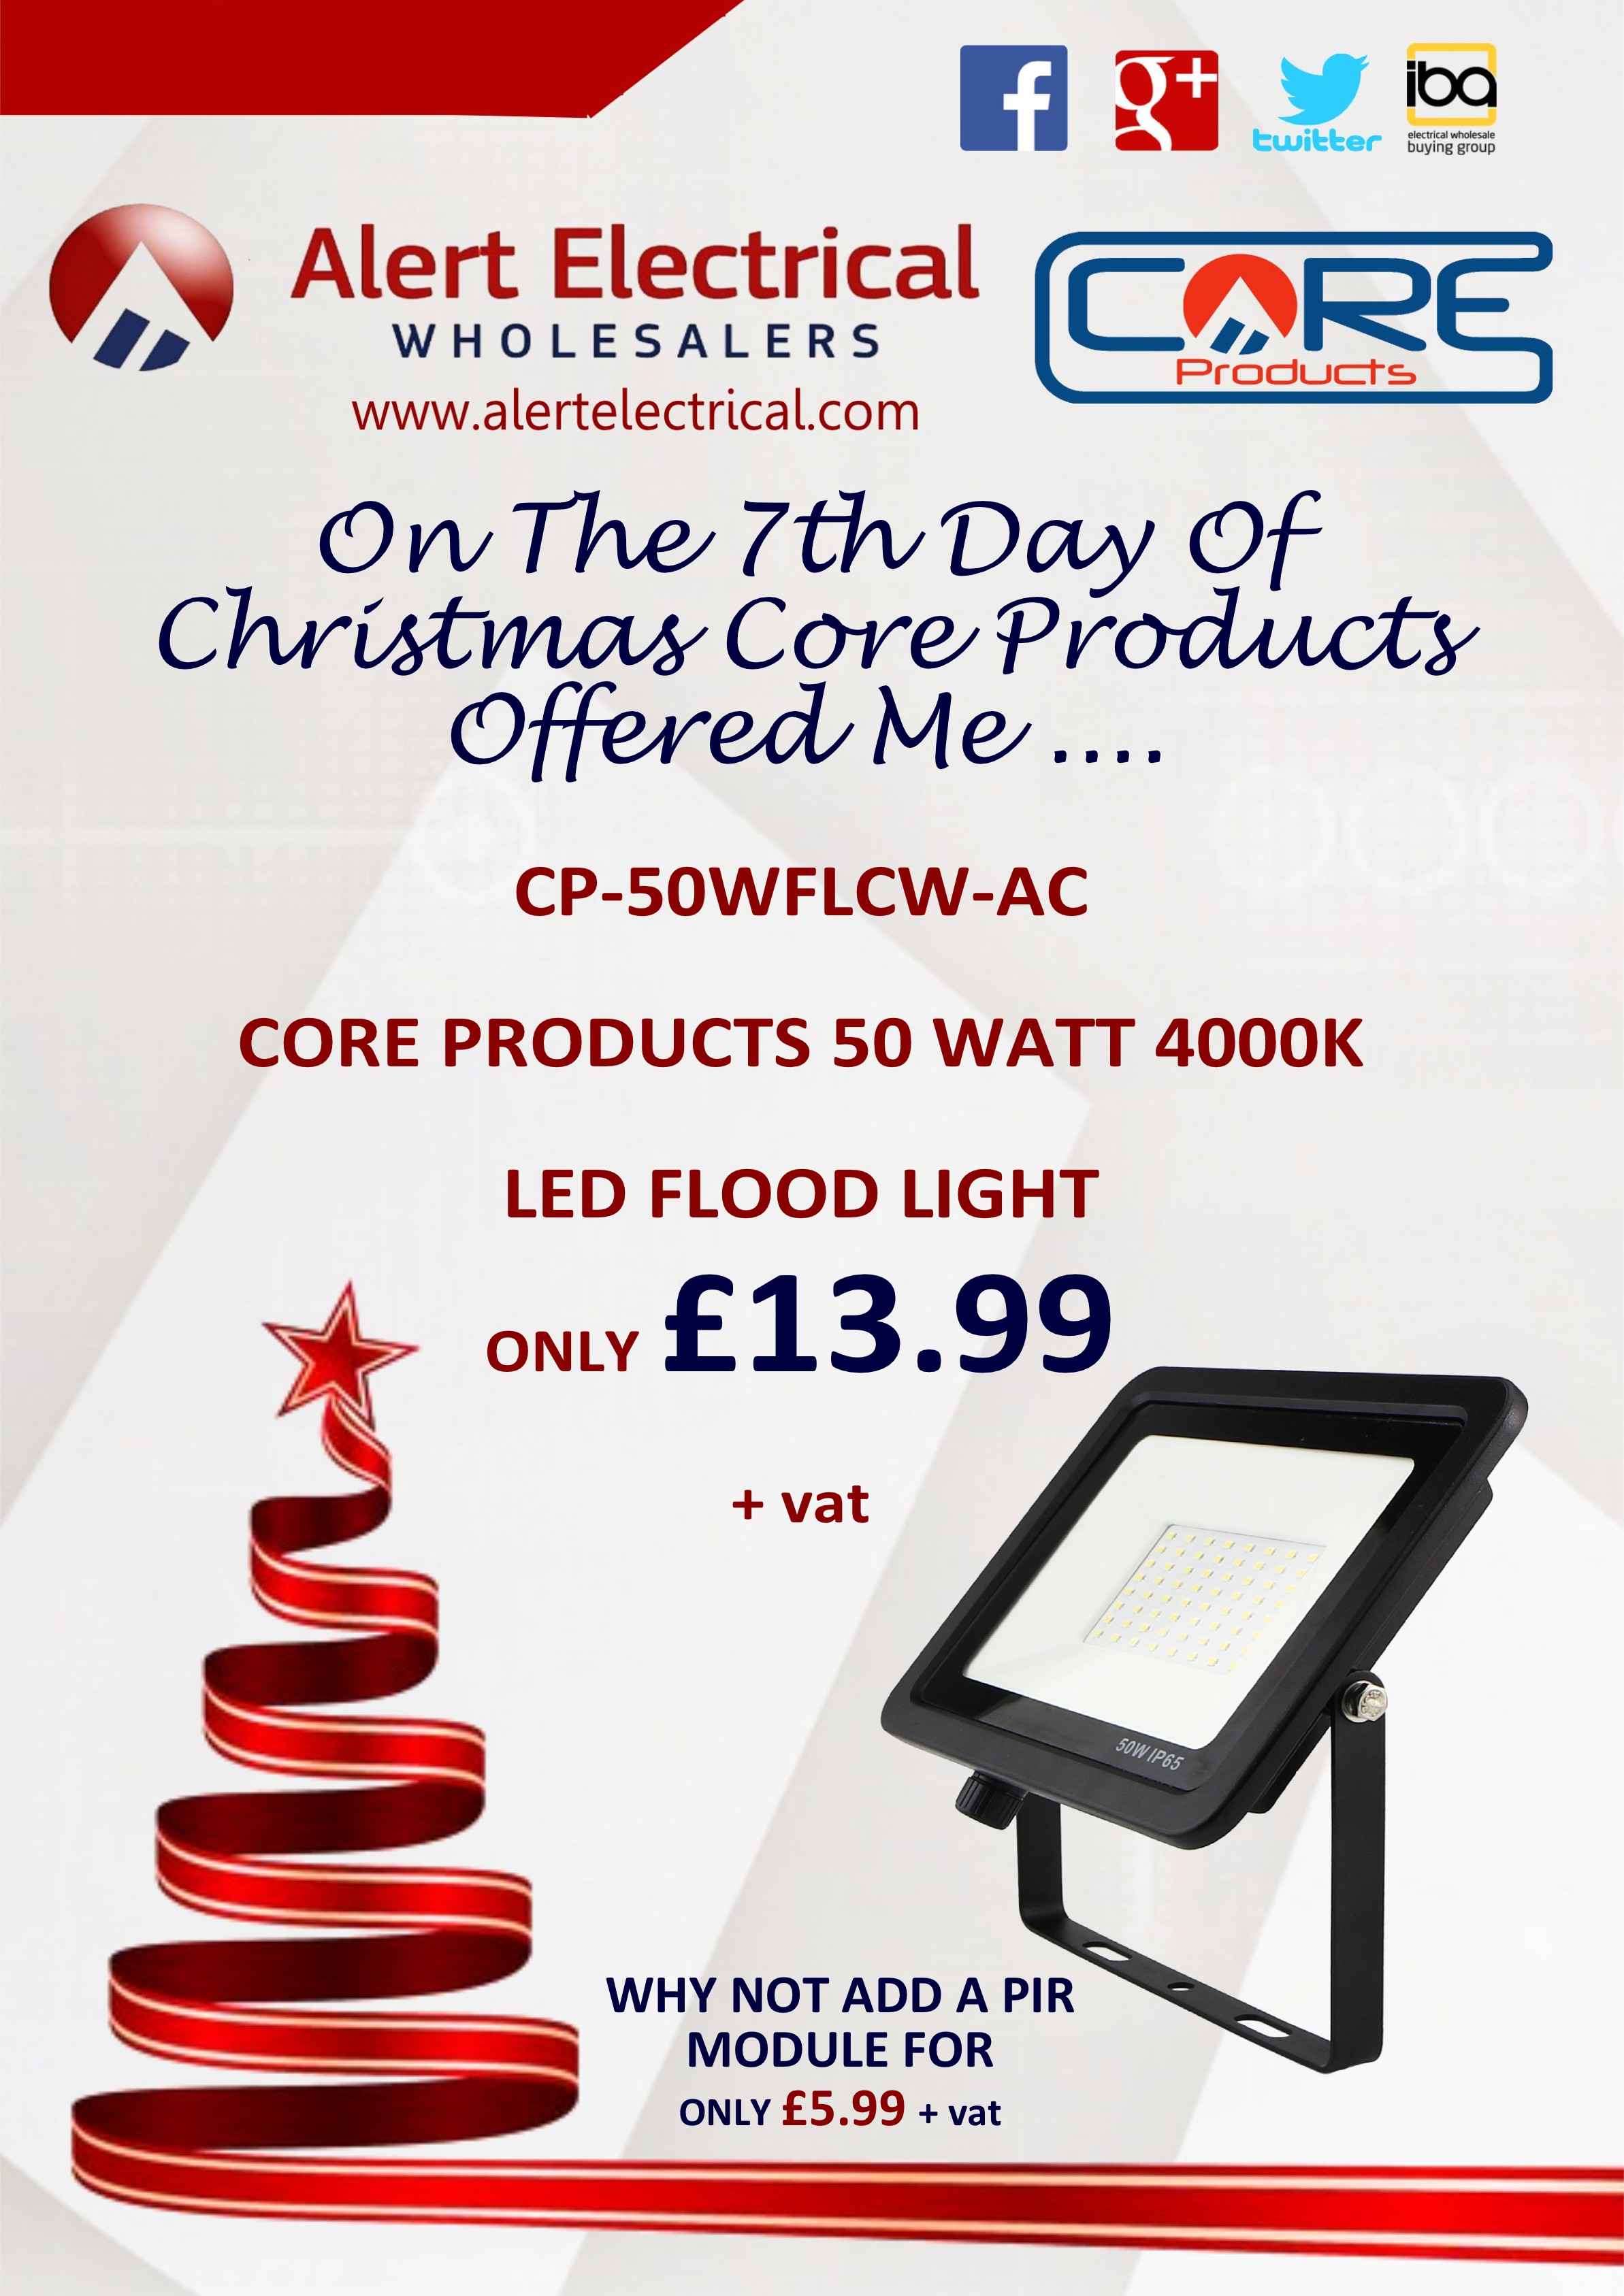 Alert Electrical Wholesalers 12 Days of Christmas. Day 7 Core Products by Alert Electrical 50W LED Flood Lights